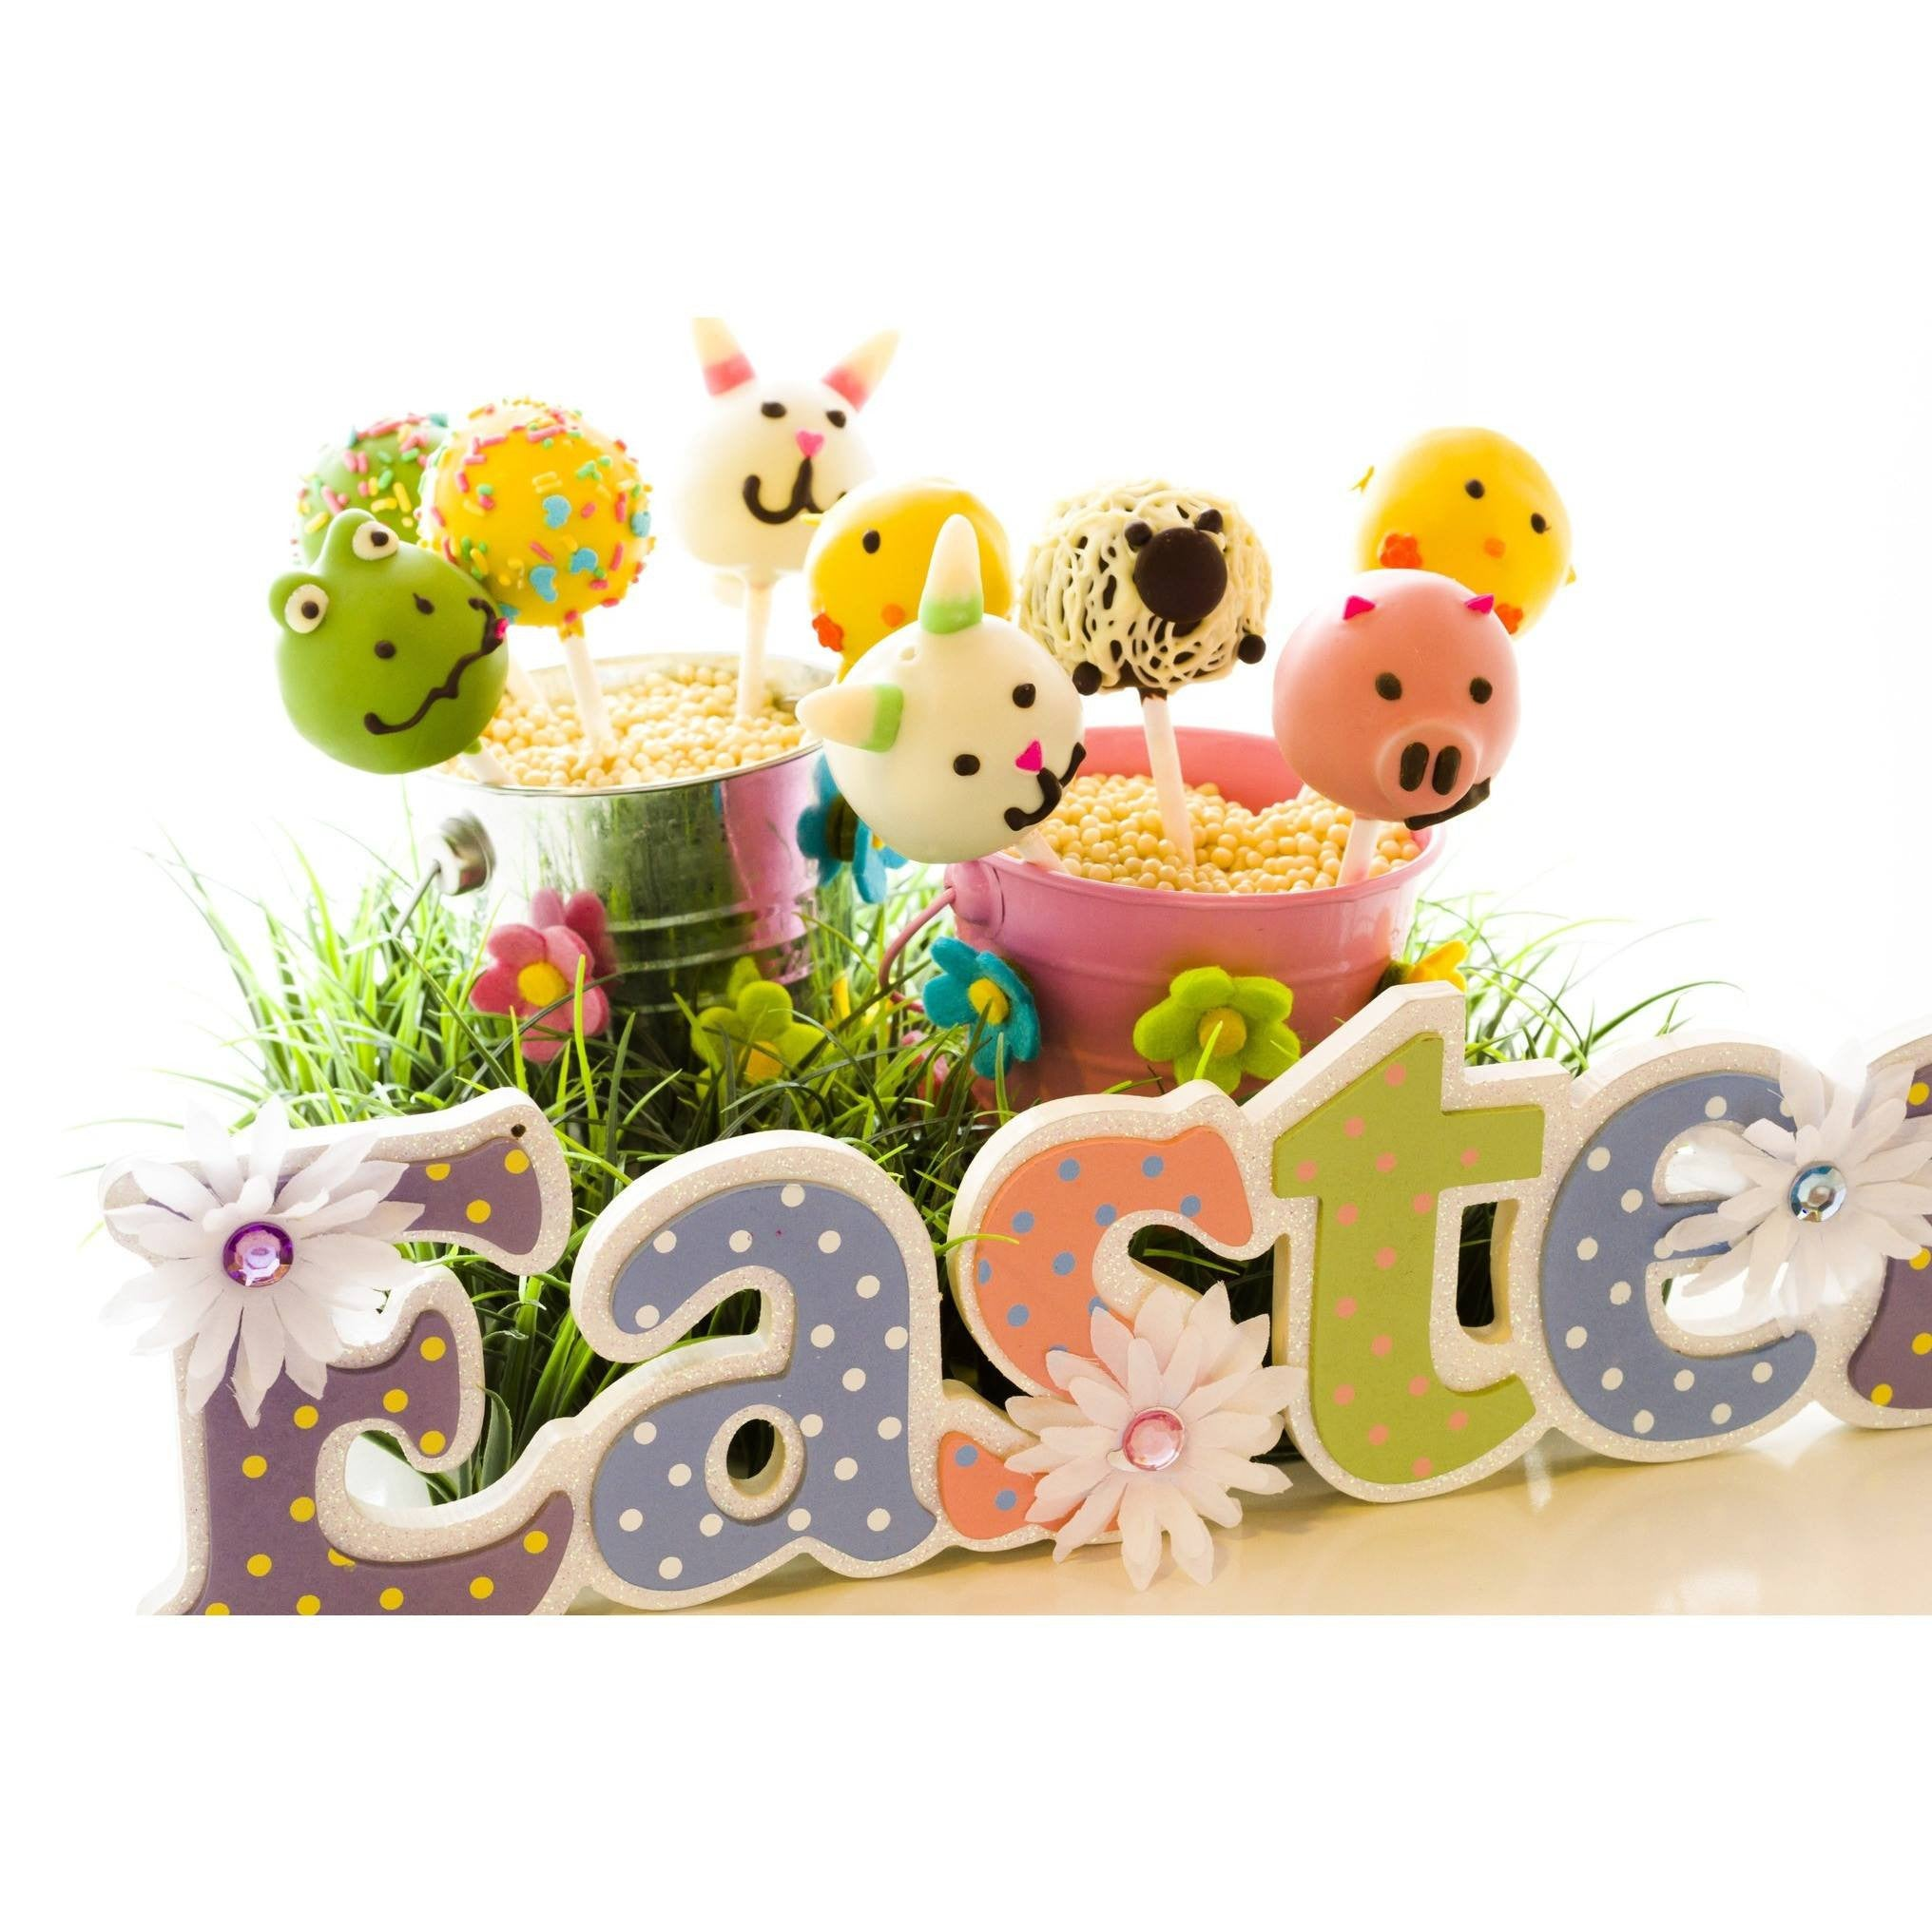 Buy Easter bunnies, sheep, chicks, frog, pig and eggs cake pops - Cake Pops Parties